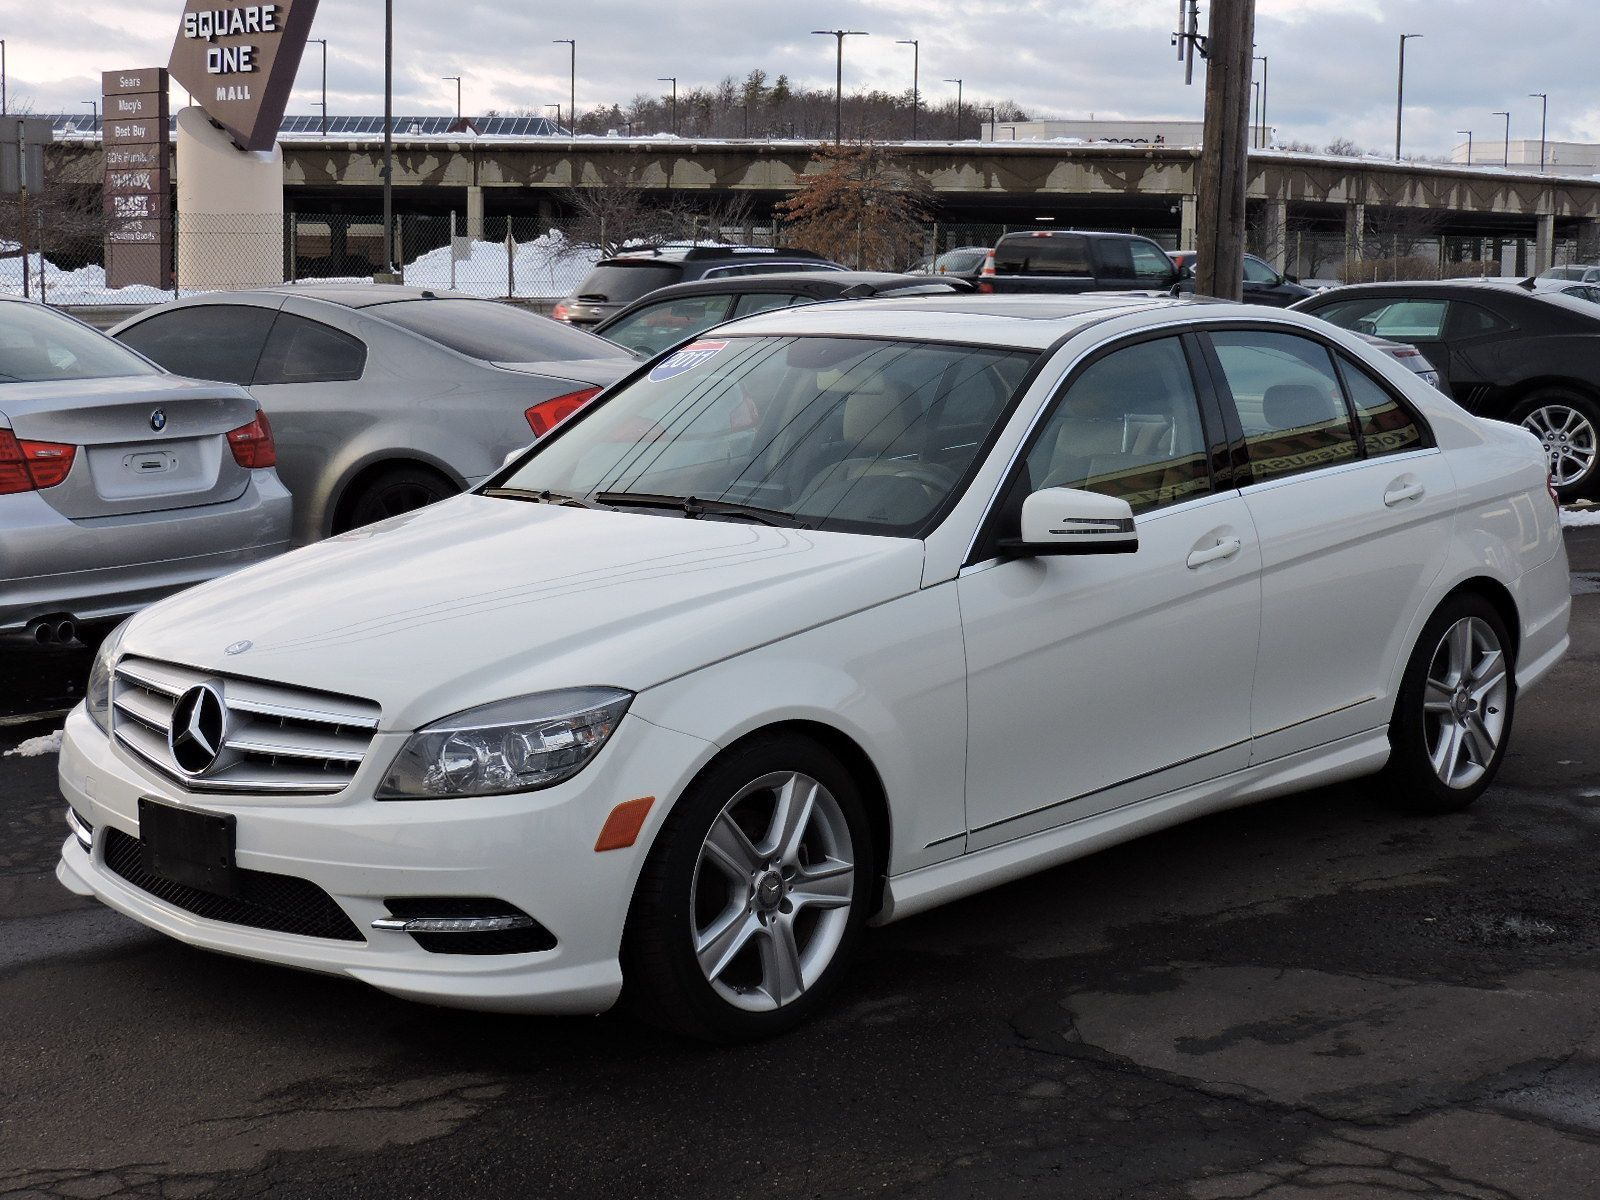 2011 Mercedes-Benz C300 Manual Sedan Luxury vehicle Model: 2011 Mercedes-Benz  C-Class MPG: 18 city / 26 highway Horsepower: 228 hp @ 6,000 rpm Engine:  3.0 L ...